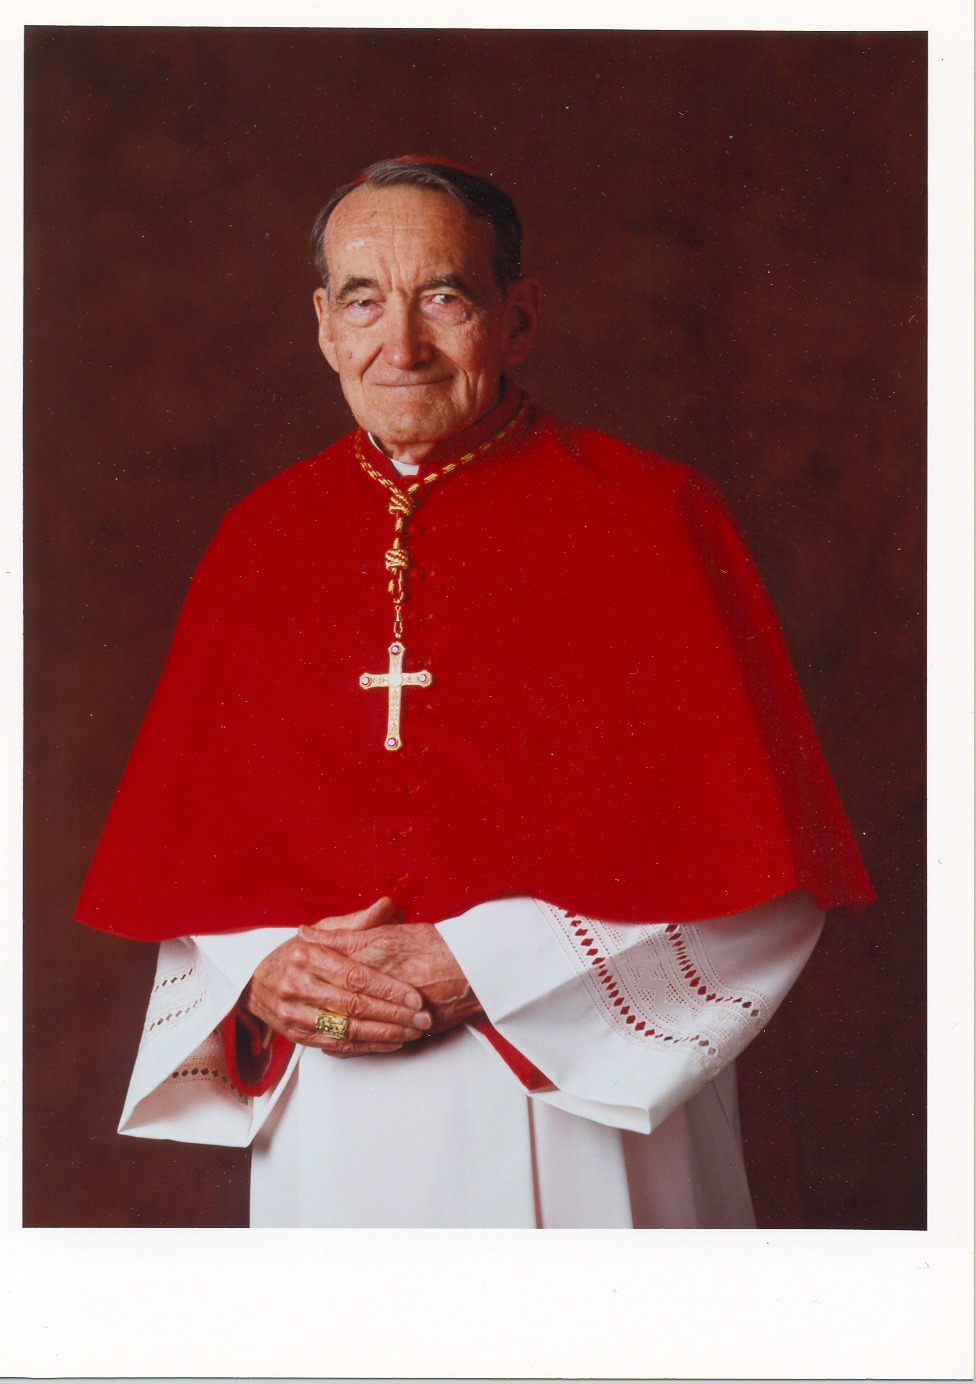 Communio: Avery Cardinal Dulles, SJ Archives